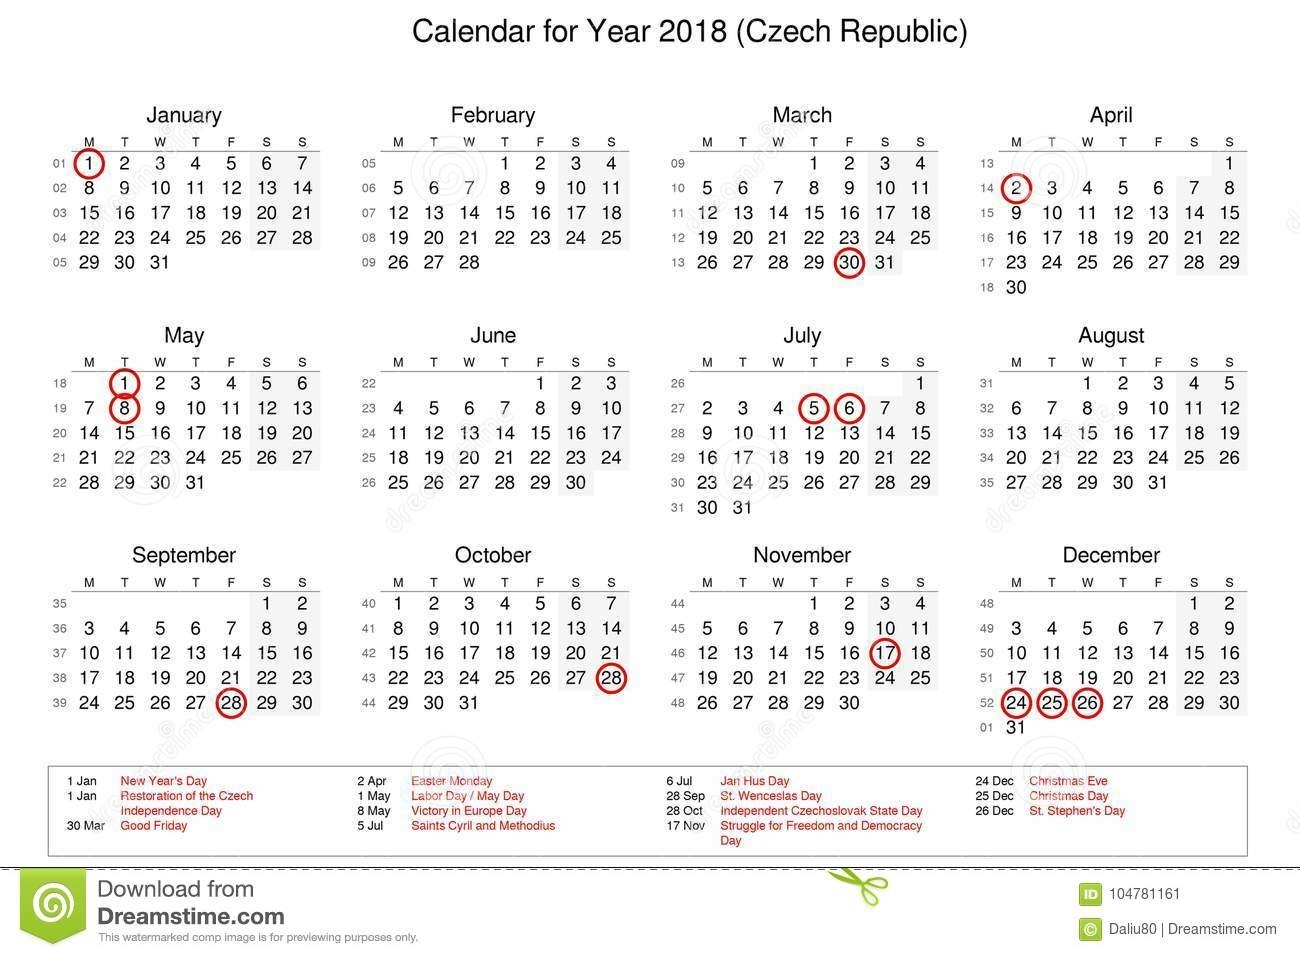 Calendar Of Year 2018 With Public Holidays And Bank Holidays-Calender With Public Holidays